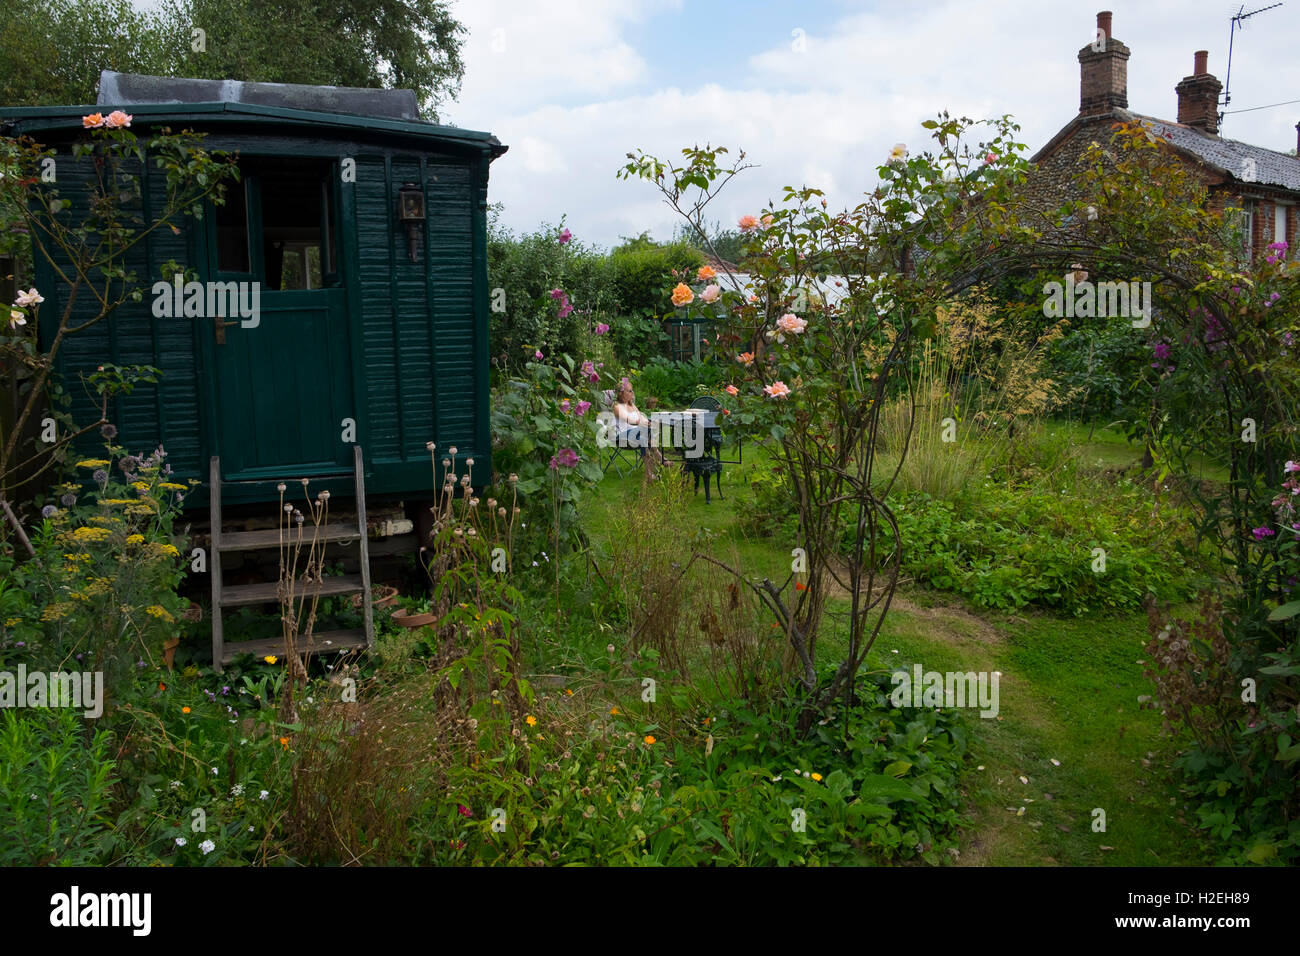 Original Showman's Wagon in cottage garden now used as a holiday let, Norfolk, England, UKk - Stock Image